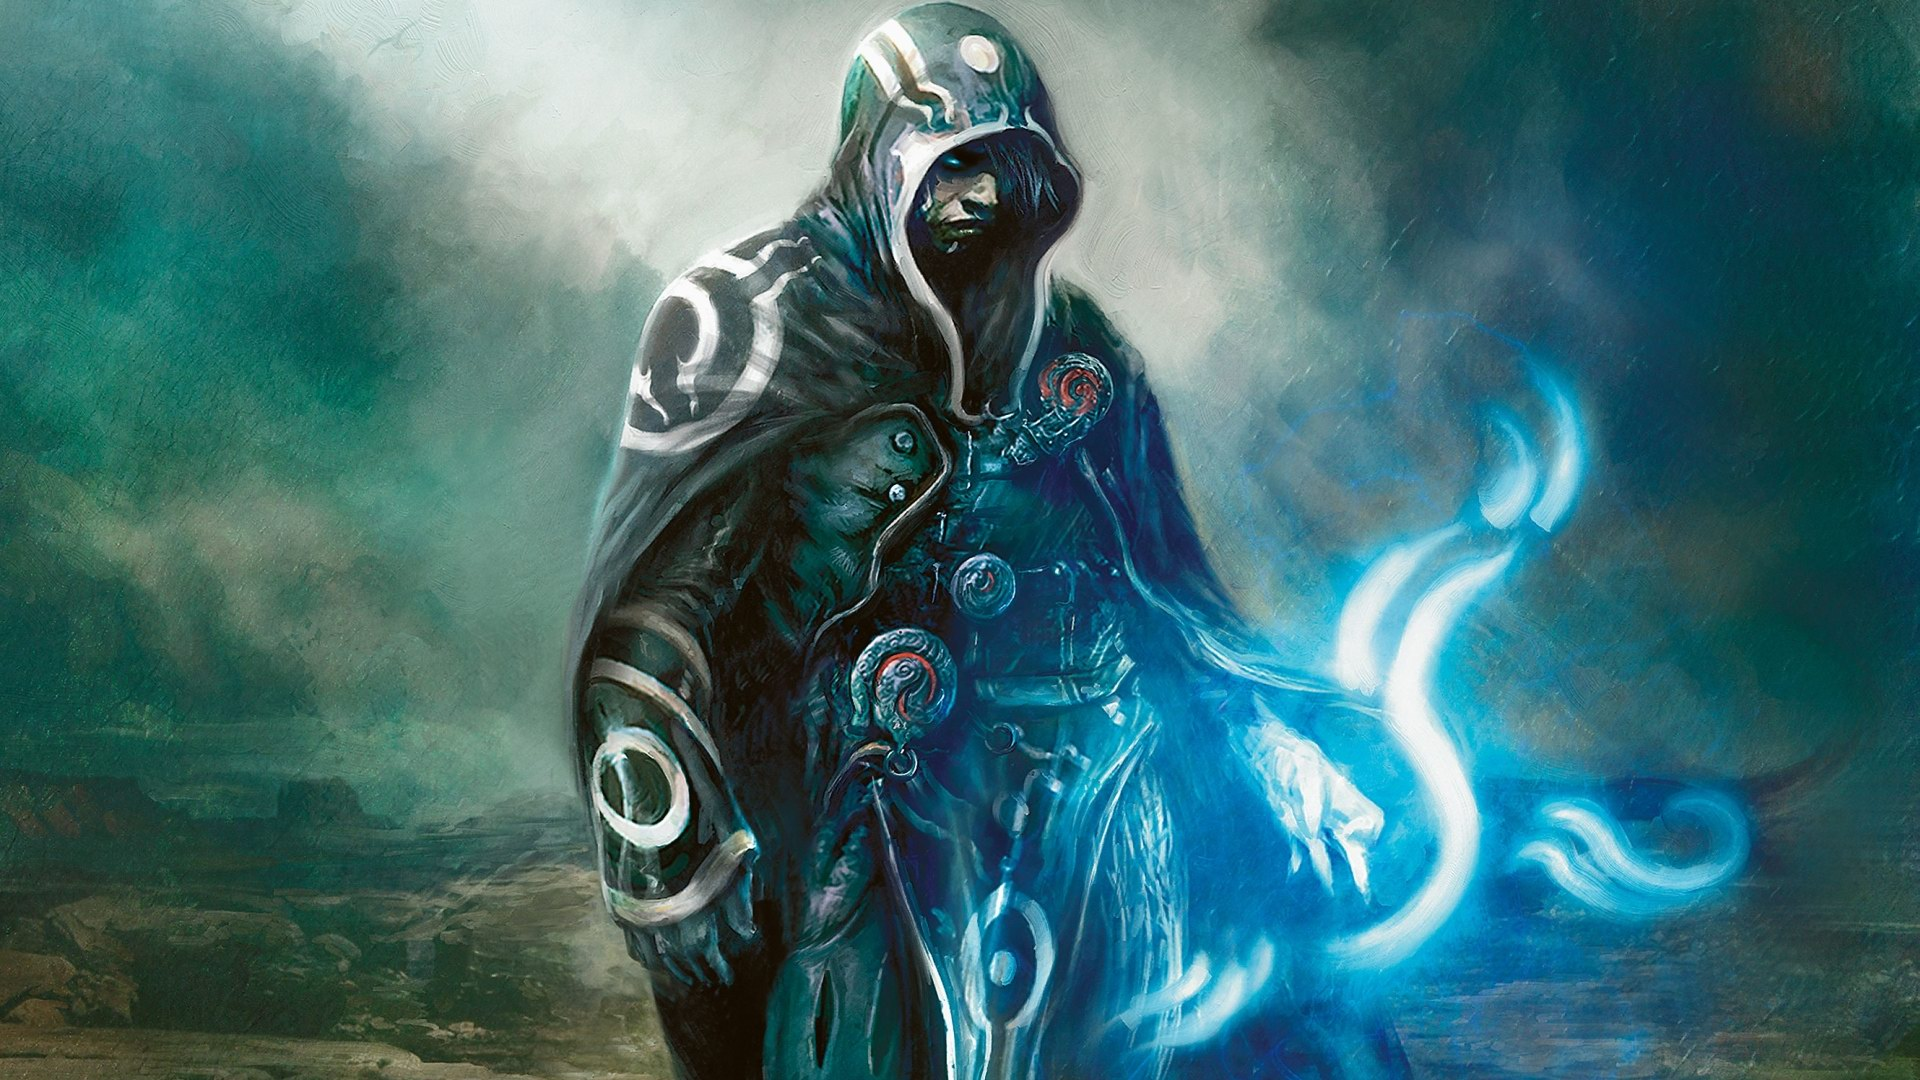 image magic the gathering fantasy art artwork jace beleren jpg